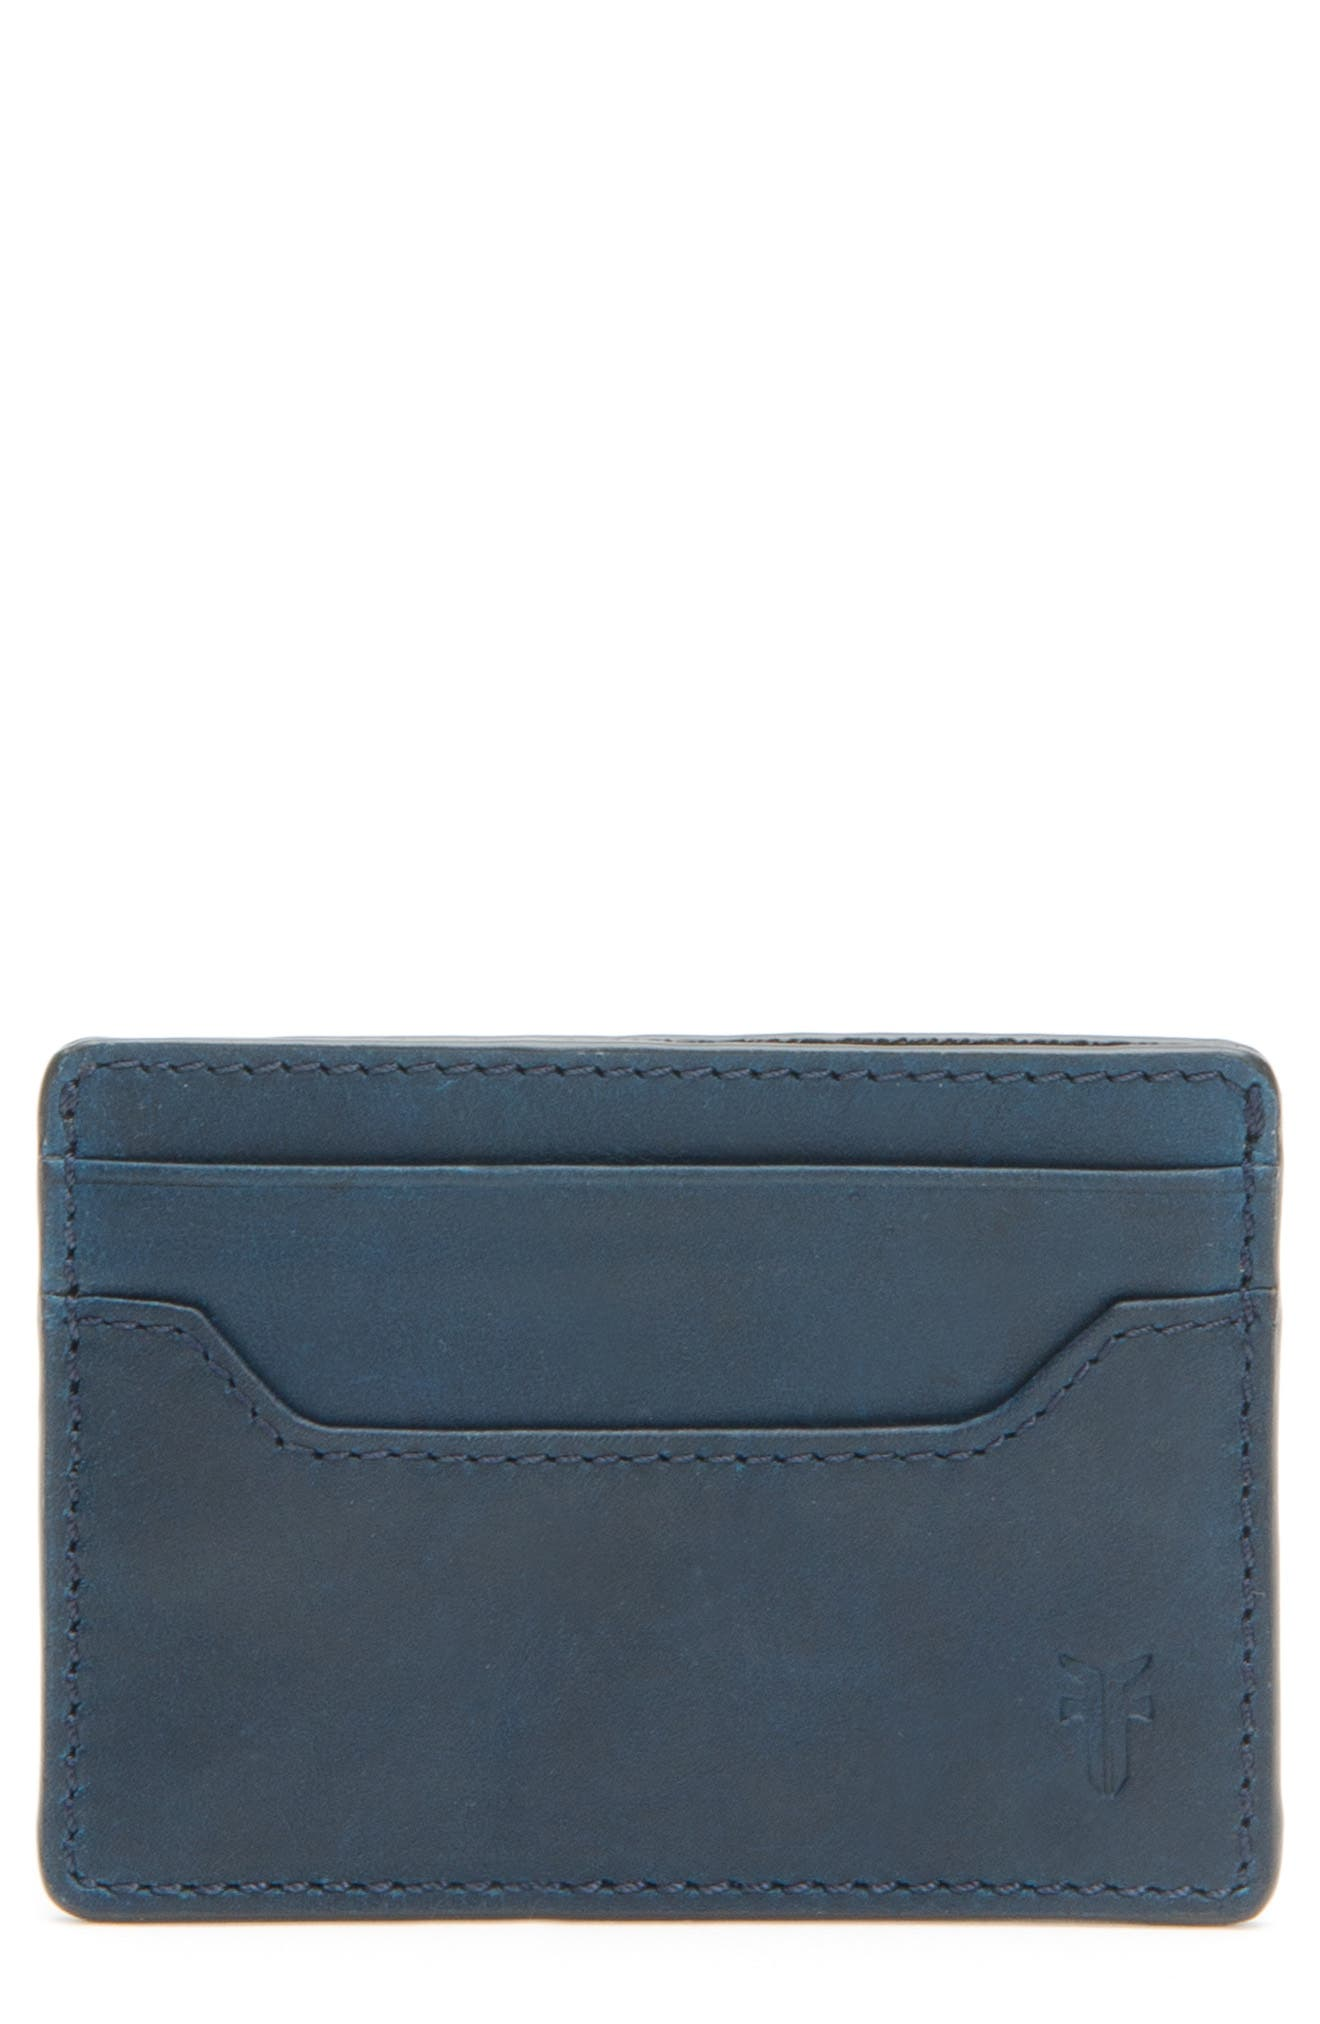 'Logan' Leather Card Holder,                         Main,                         color, NAVY